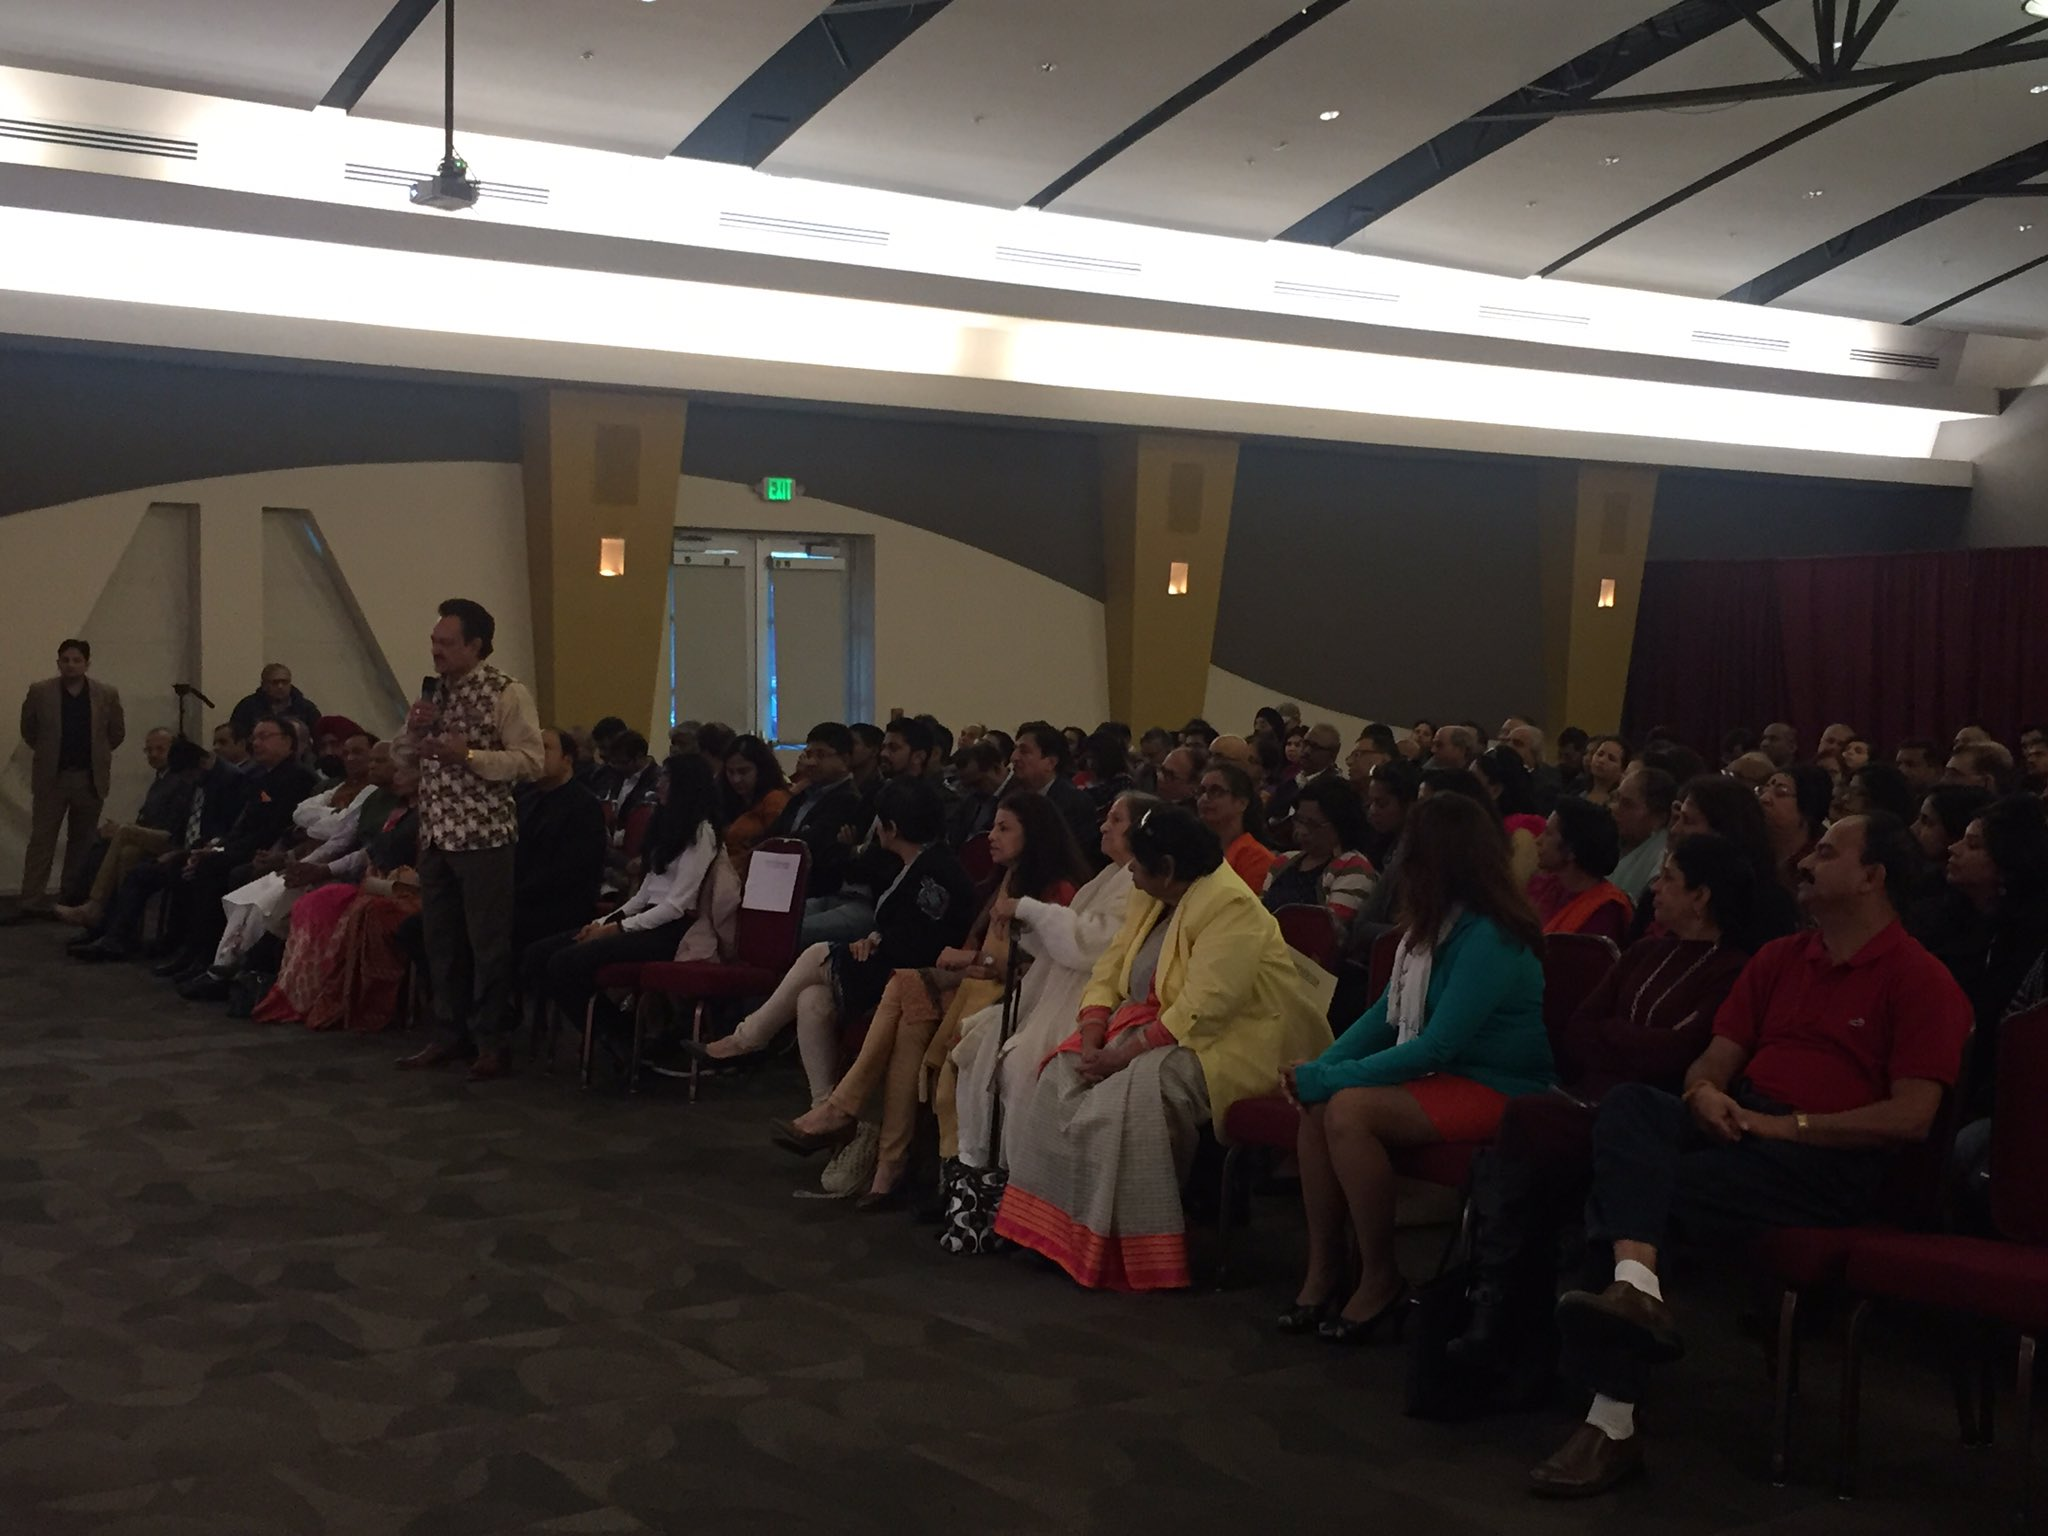 Pravasi Bharatiya Divas 2020 at ICC Milpitas with enthusiastic participation by community members.